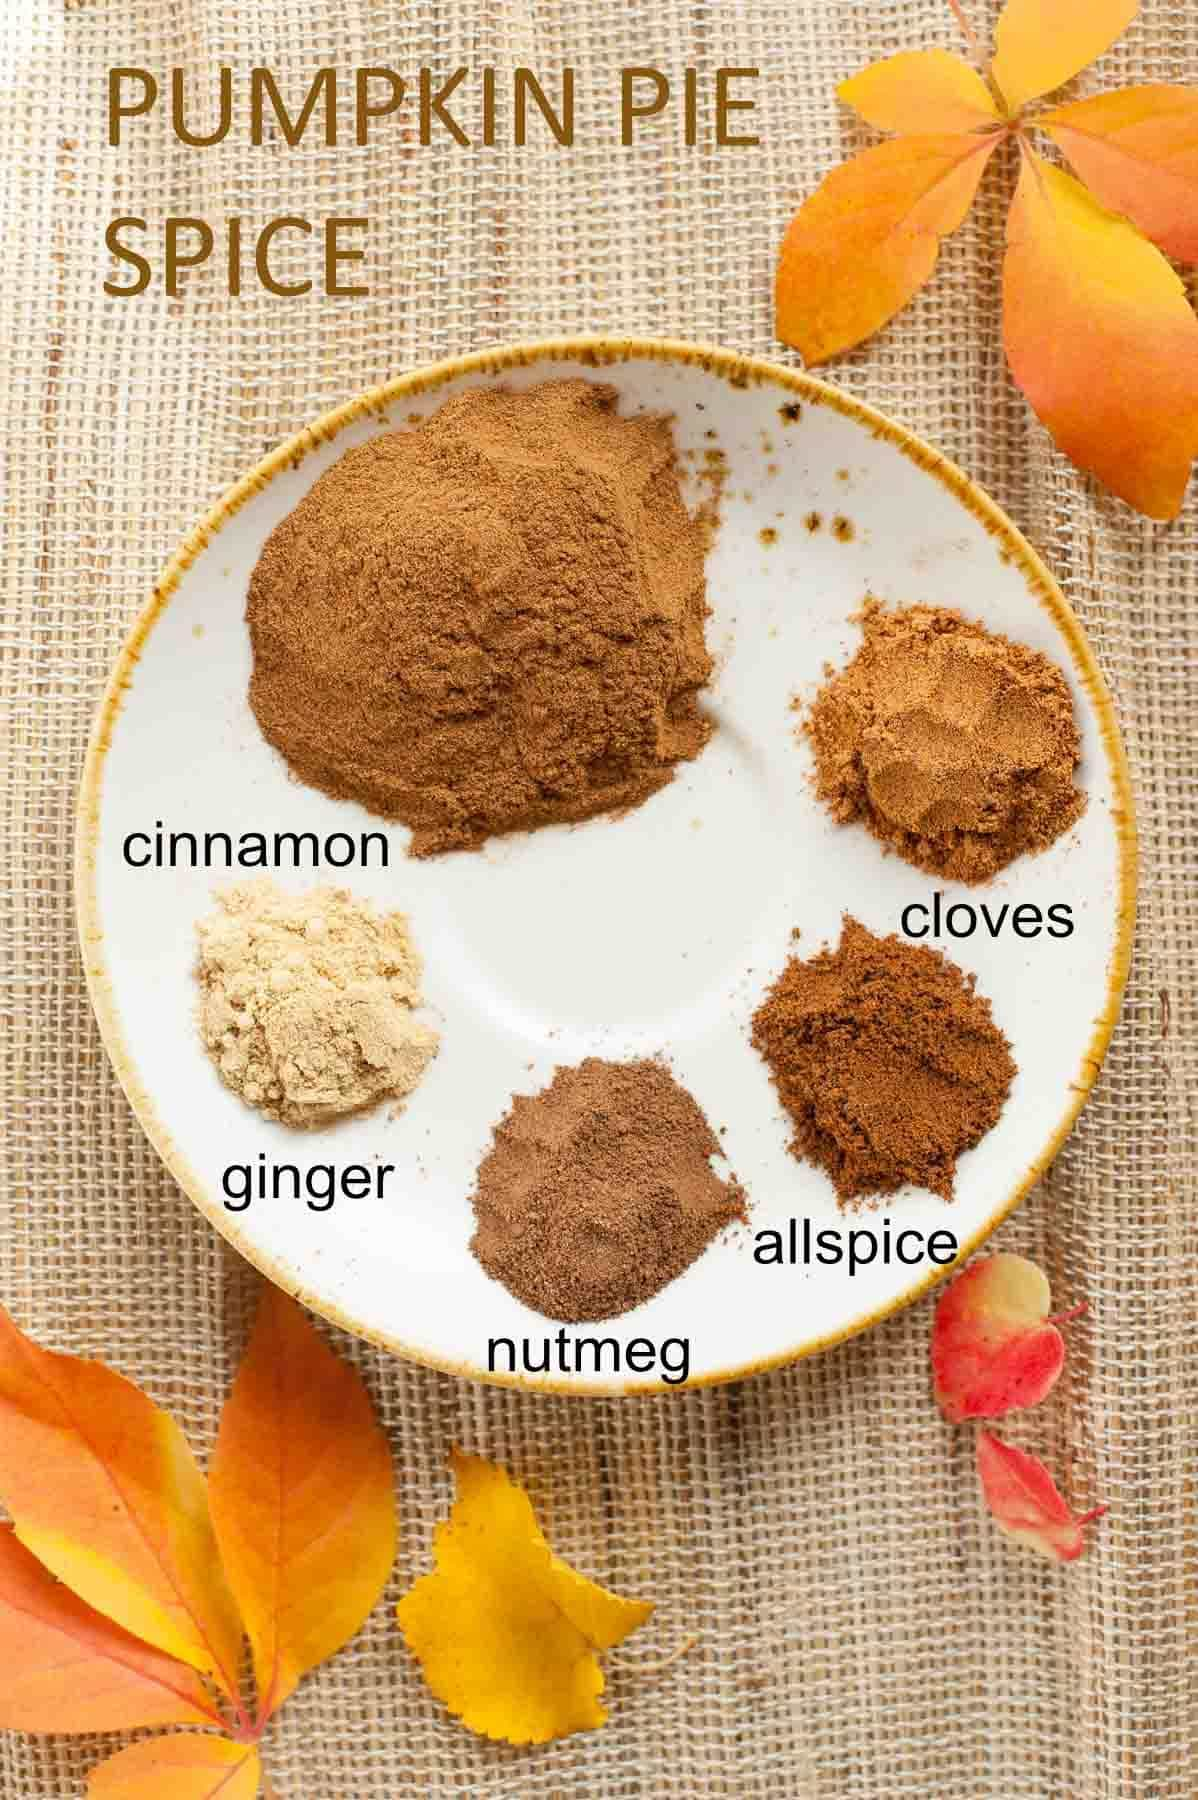 pumpkin pie spice ingredients on a small plate